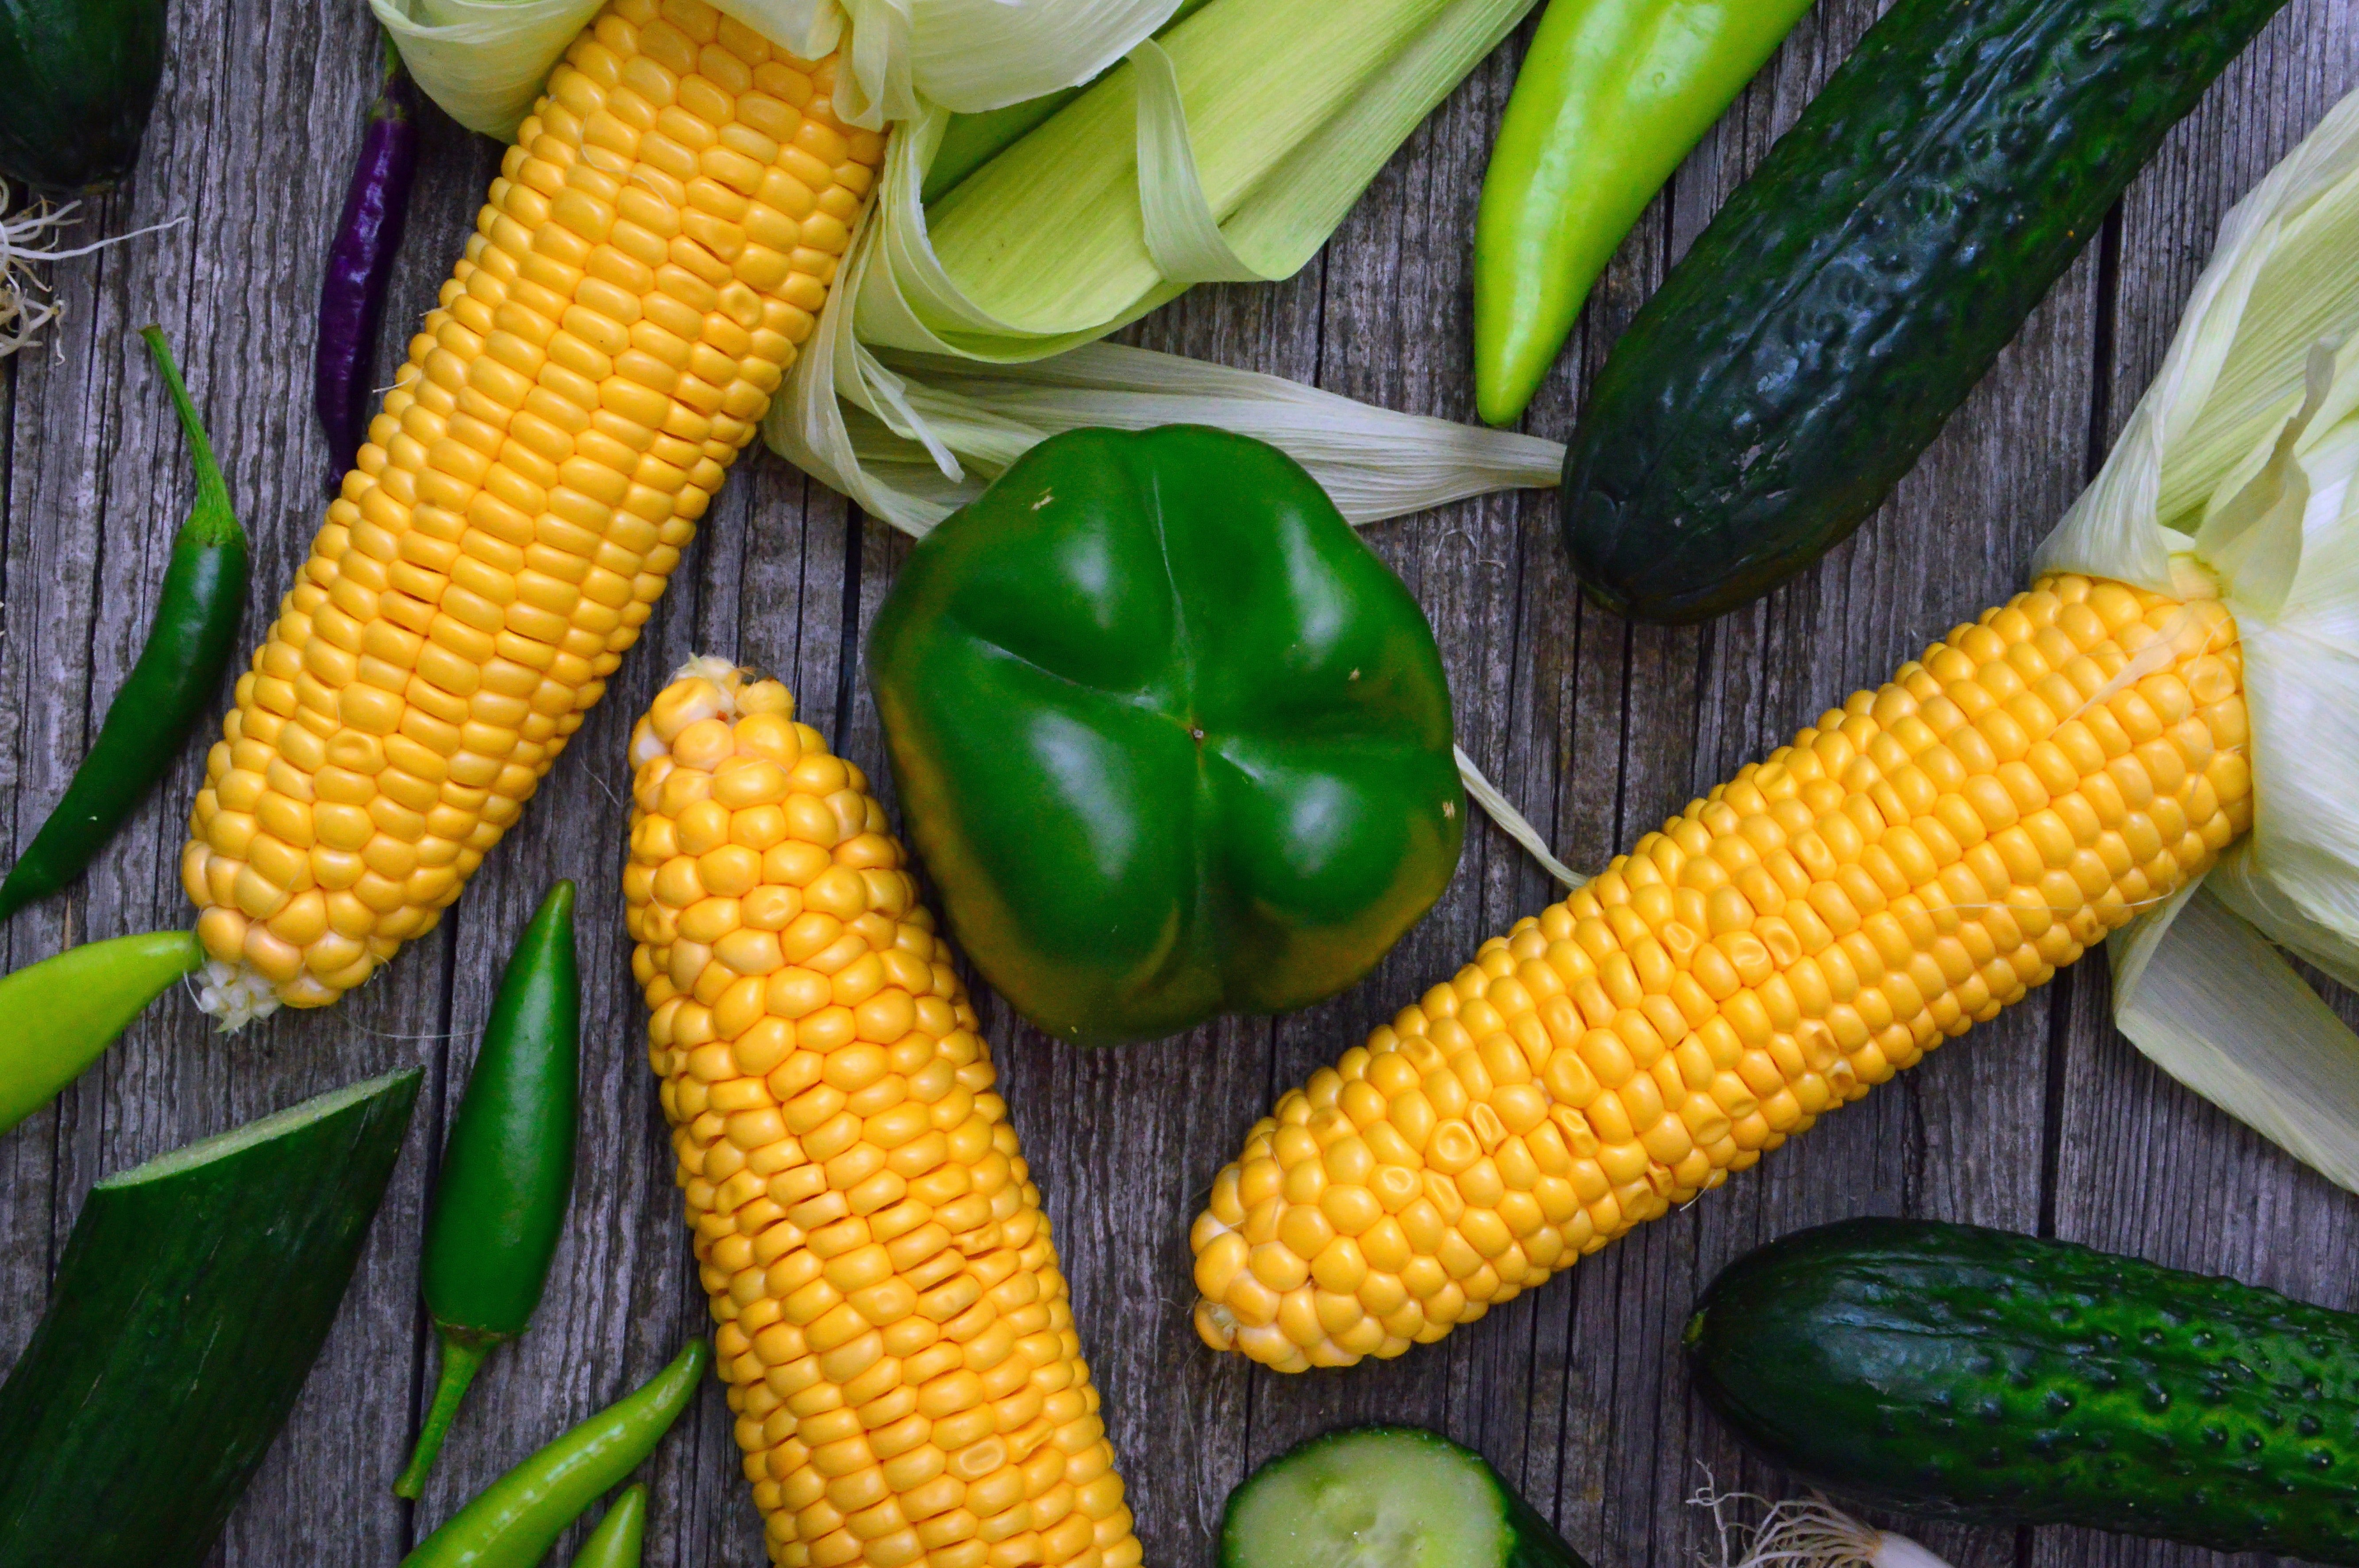 sweetcorn-and-bell-pepper-1414650